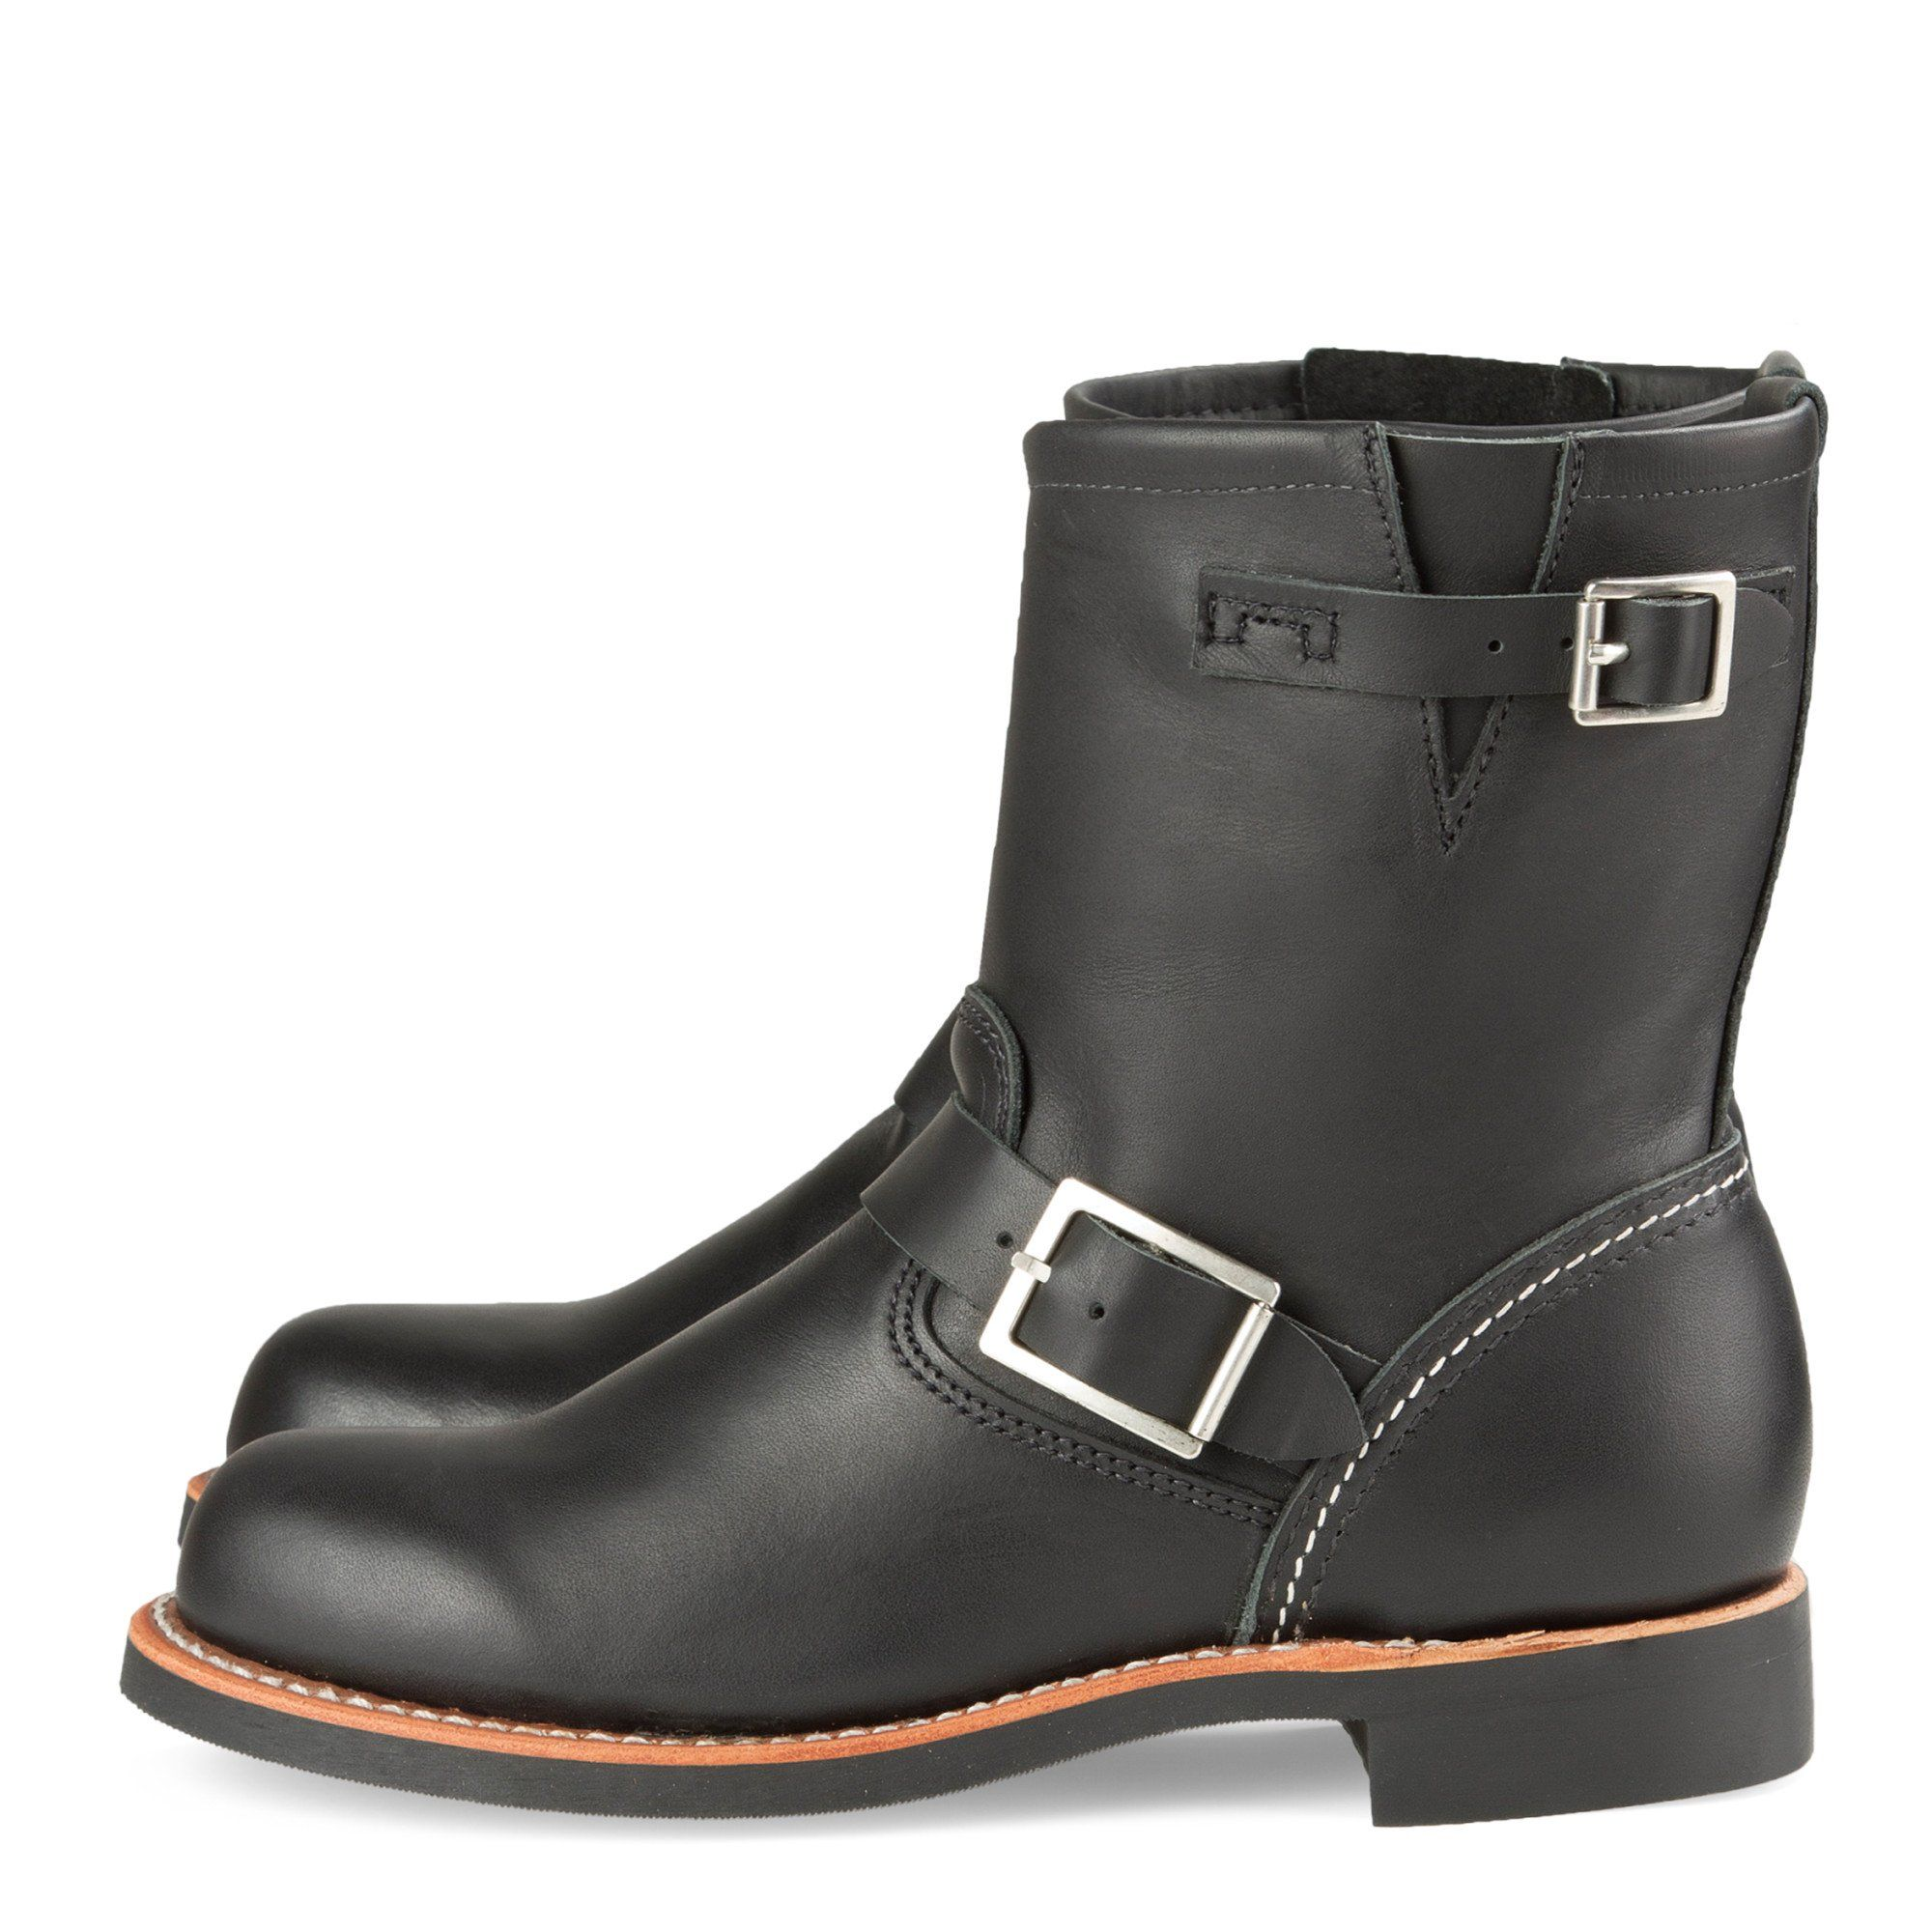 The dark Red Wing Short Engineer 3354 in the Ebony Harness